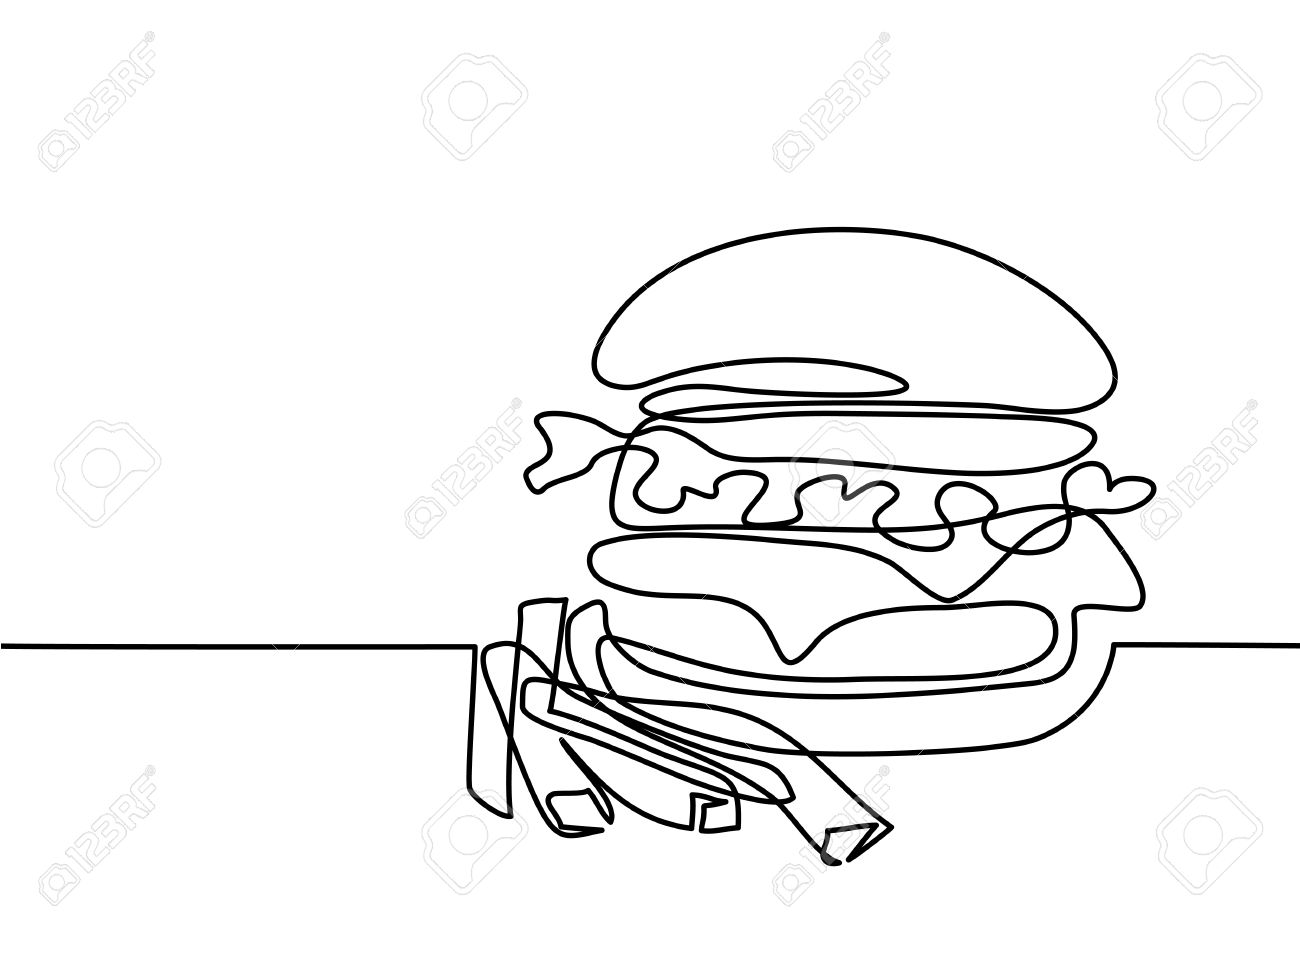 1300x975 Continuous Line Drawing. Big Hamburger With French Fries Fast